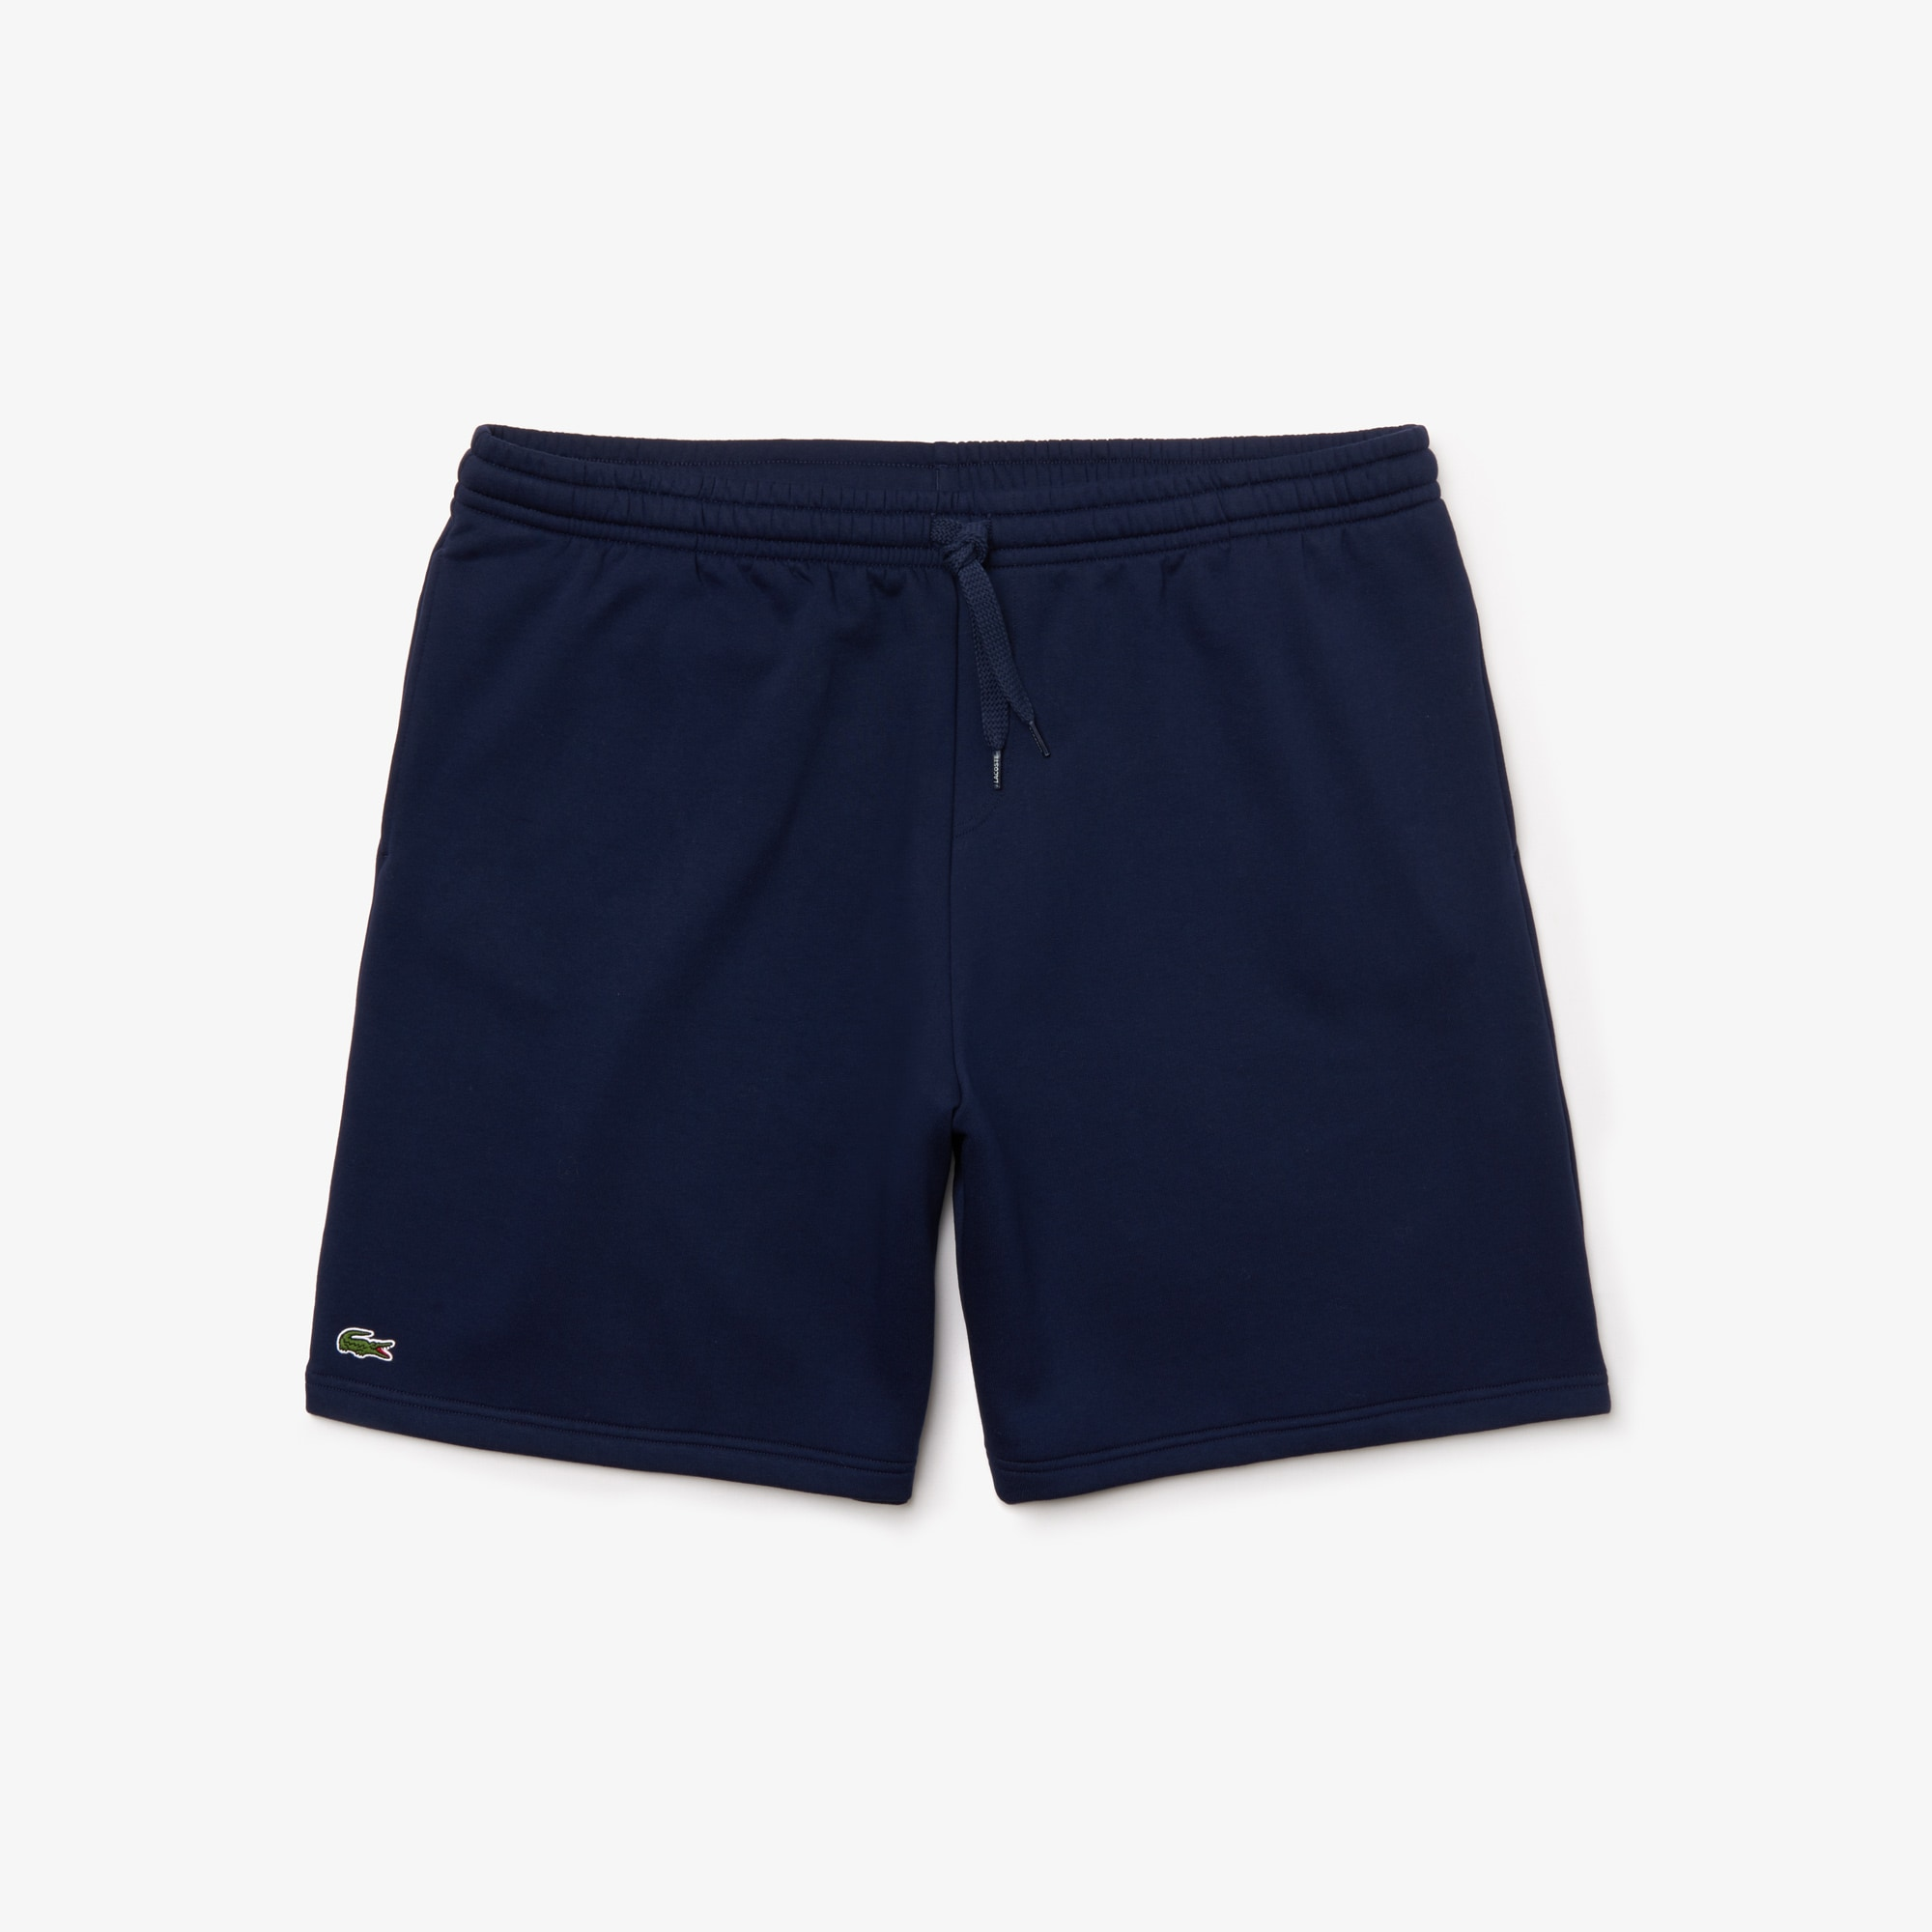 Lacoste Korte Broek Heren.Trousers And Shorts For Men Men S Fashion Lacoste